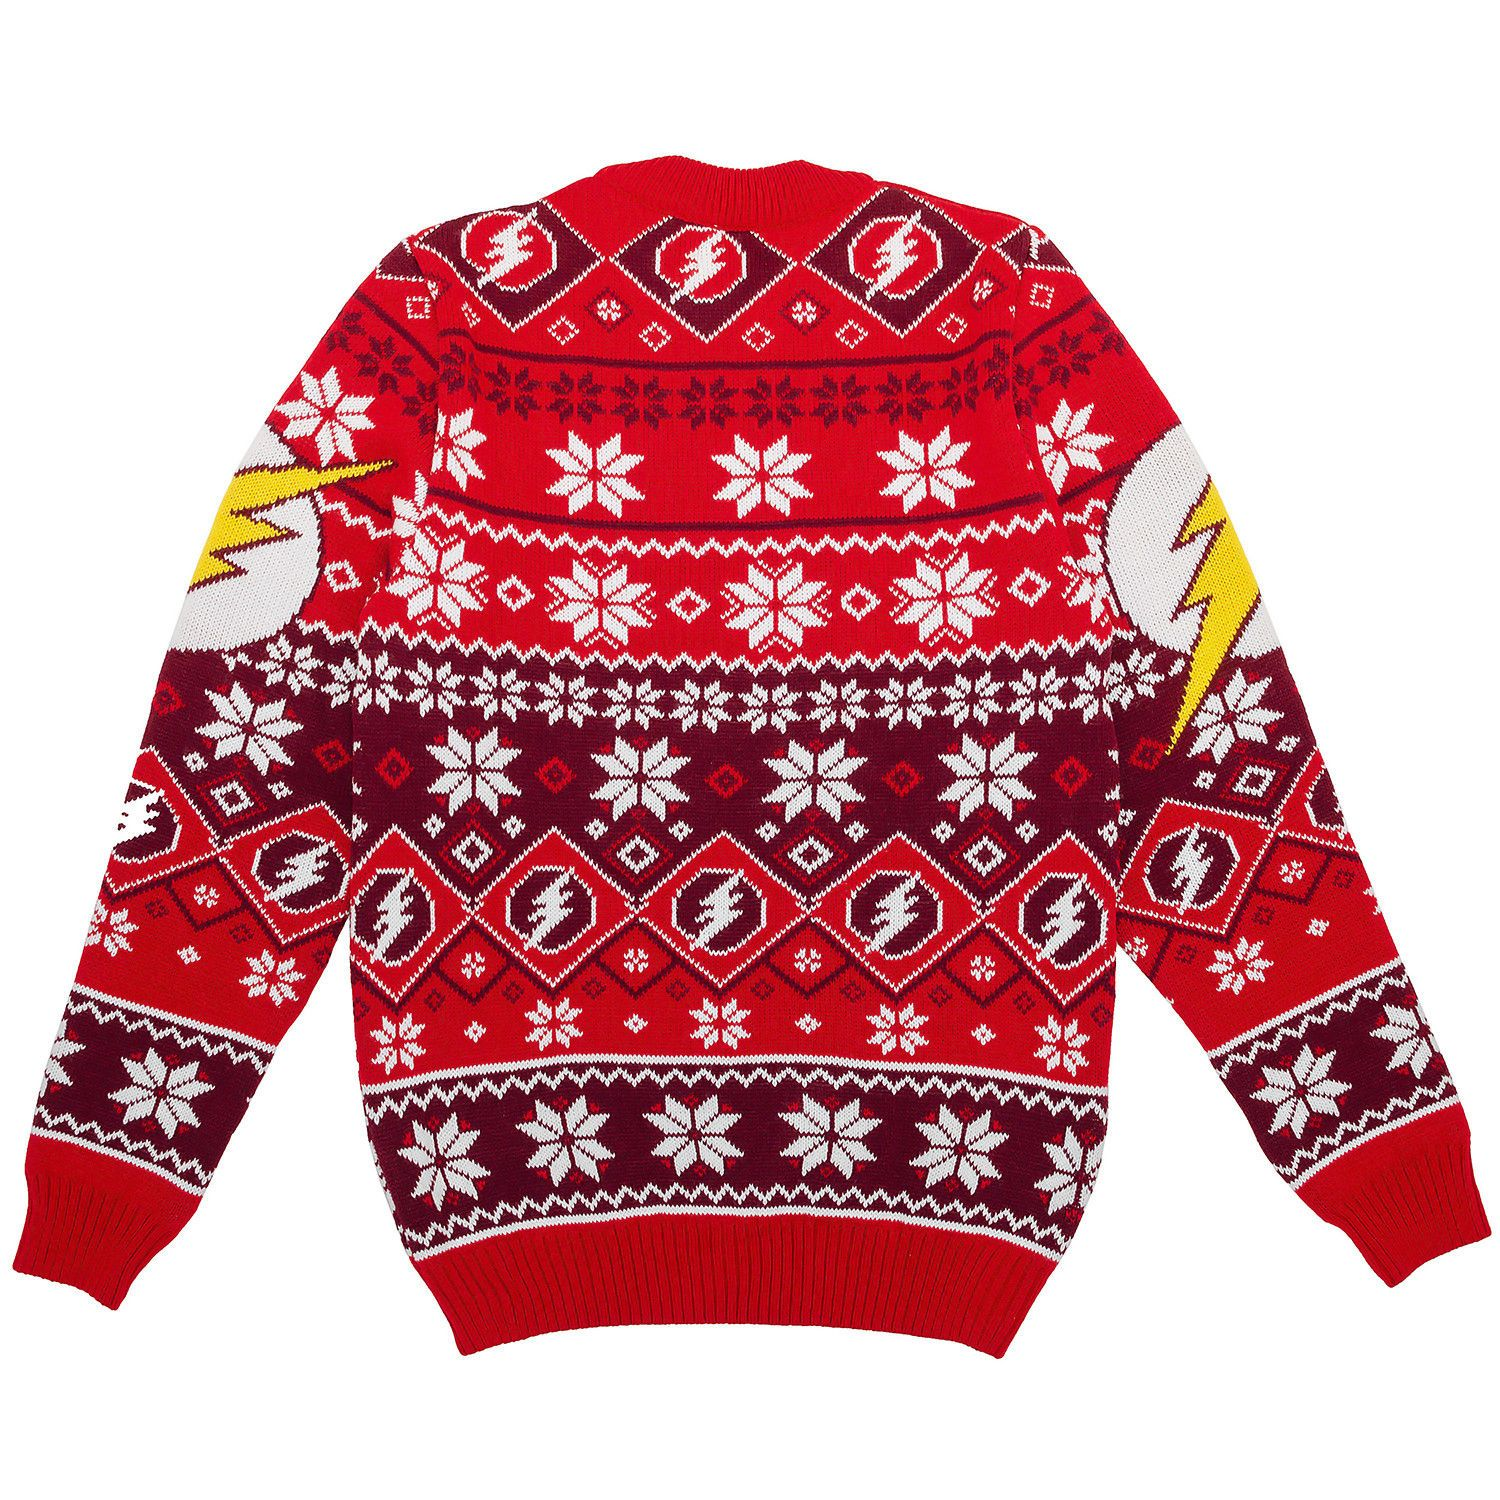 Dc Christmas Sweater.Pin On Clothing Shoes Accessories